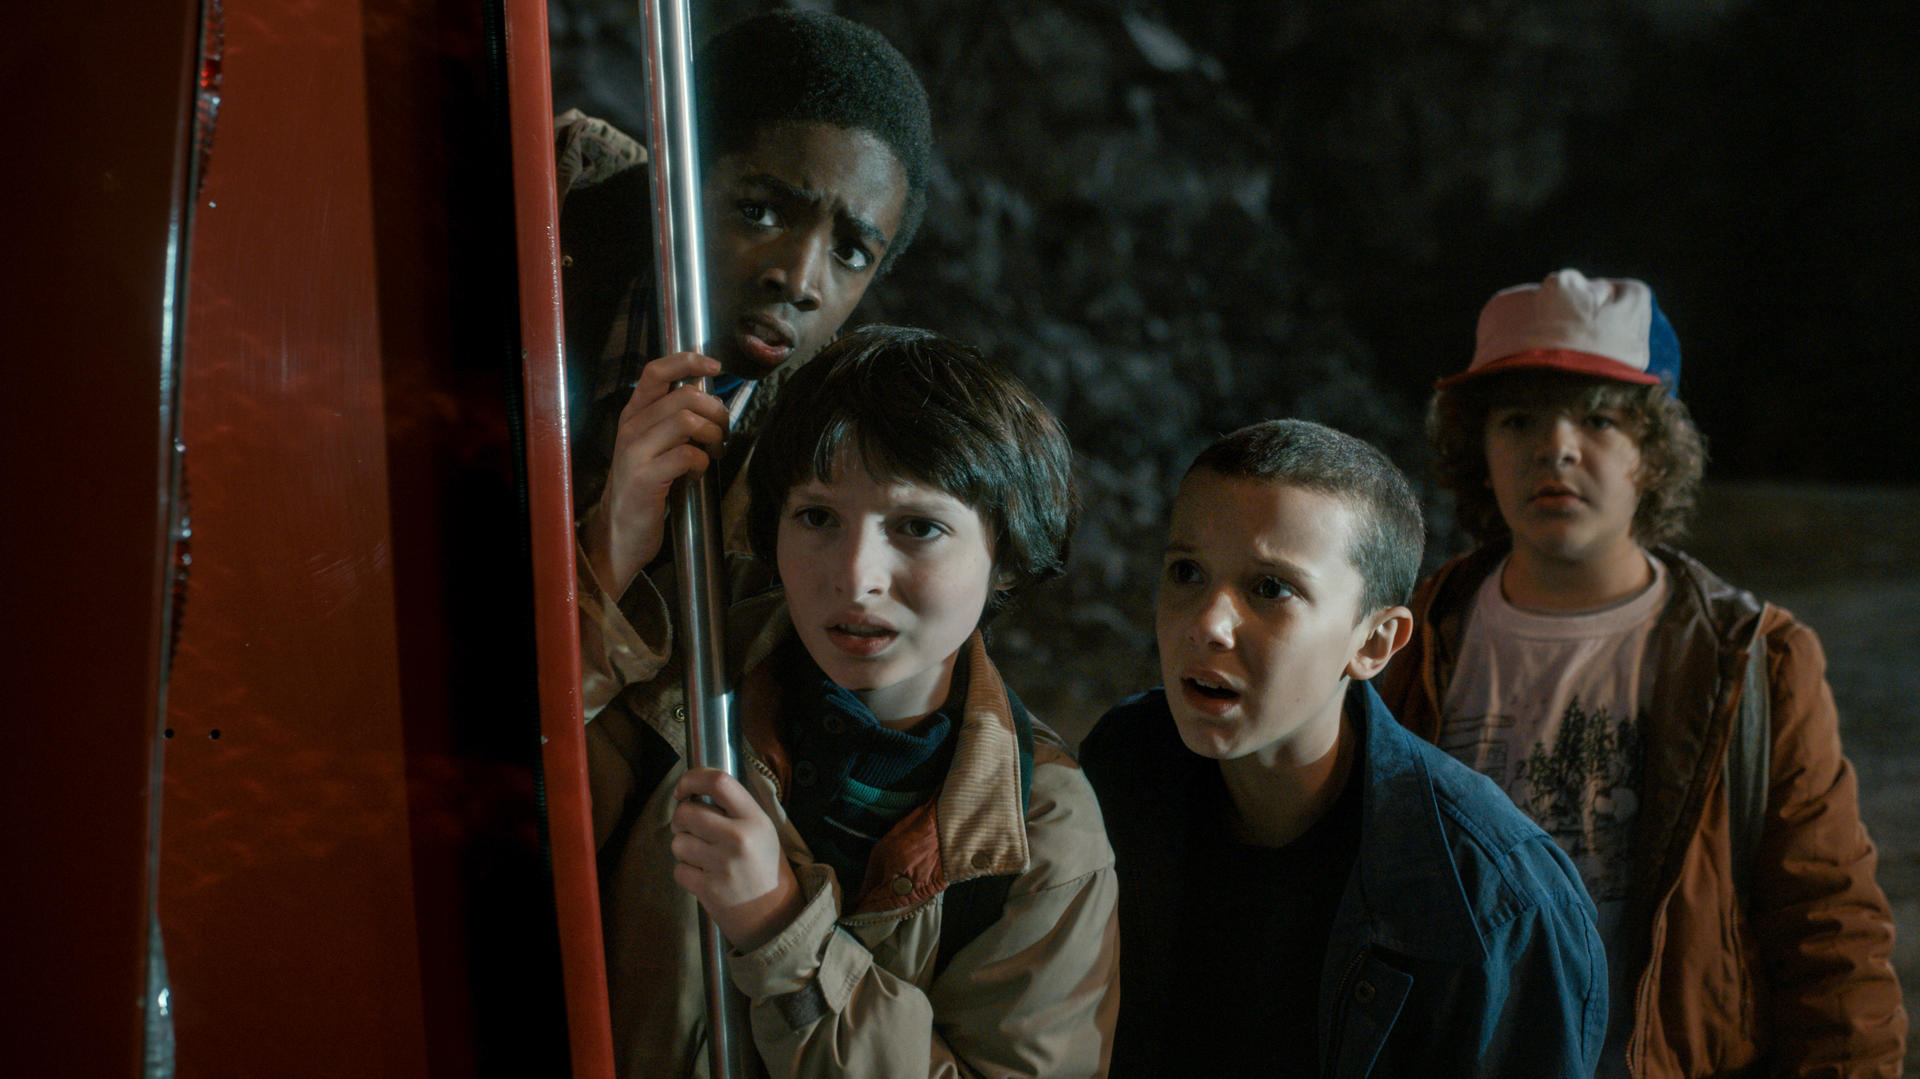 stranger-things-staffel-1-mit-millie-bobby-brown-caleb-mclaughlin-gaten-matarazzo-und-finn-wolfhard